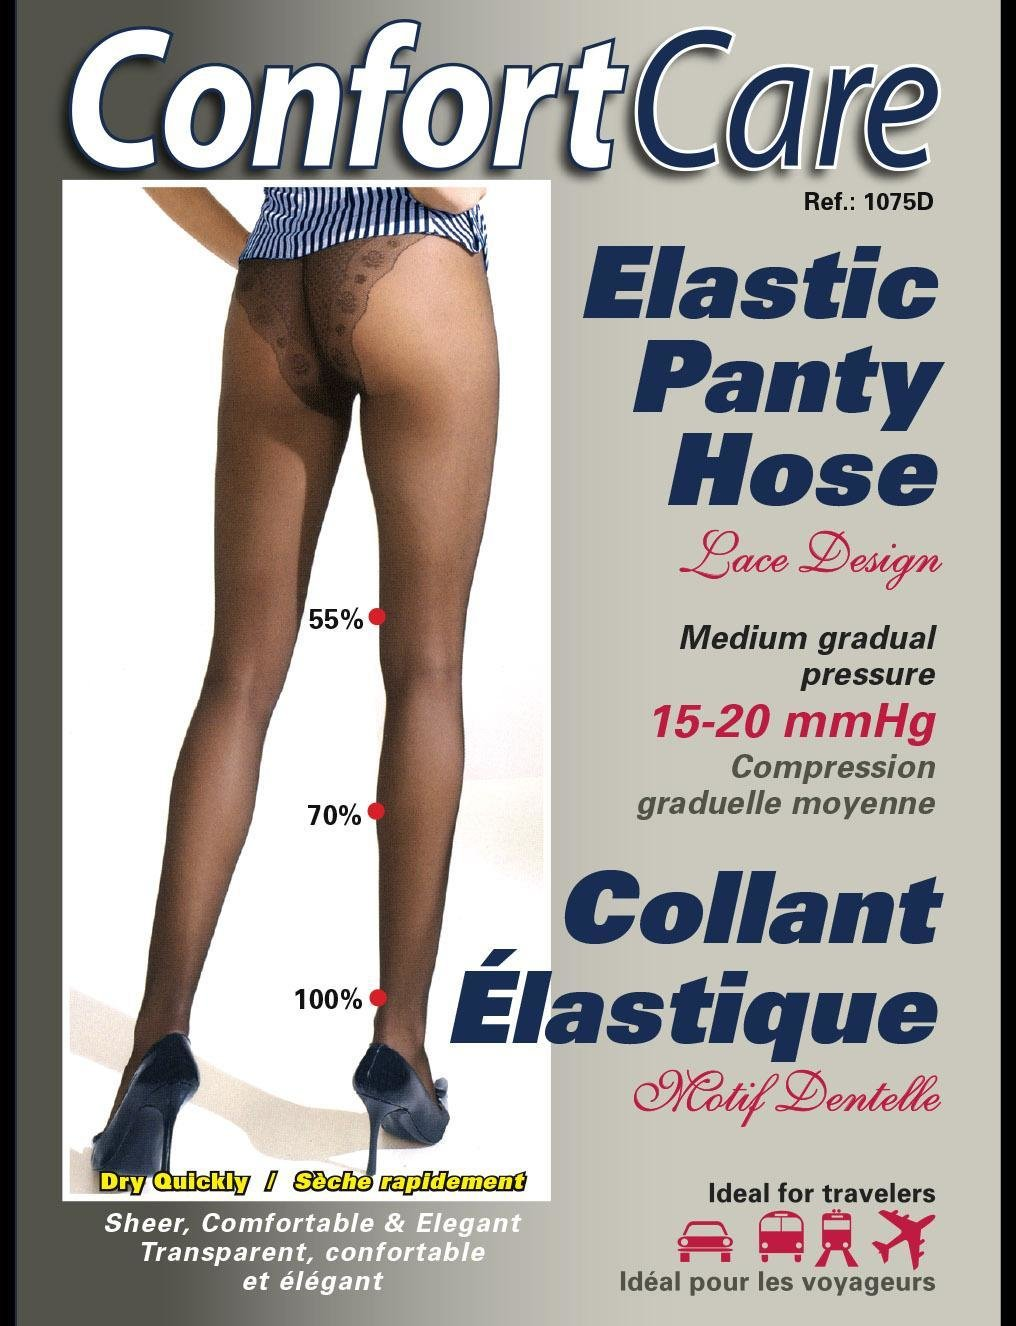 Spécial #1075D 3PRS. X $60.00 Collant Èlastique Motif Dentelle Support moyen (15-20mmHg) Elastic medium Support  Panty Hose ( Lace Design).